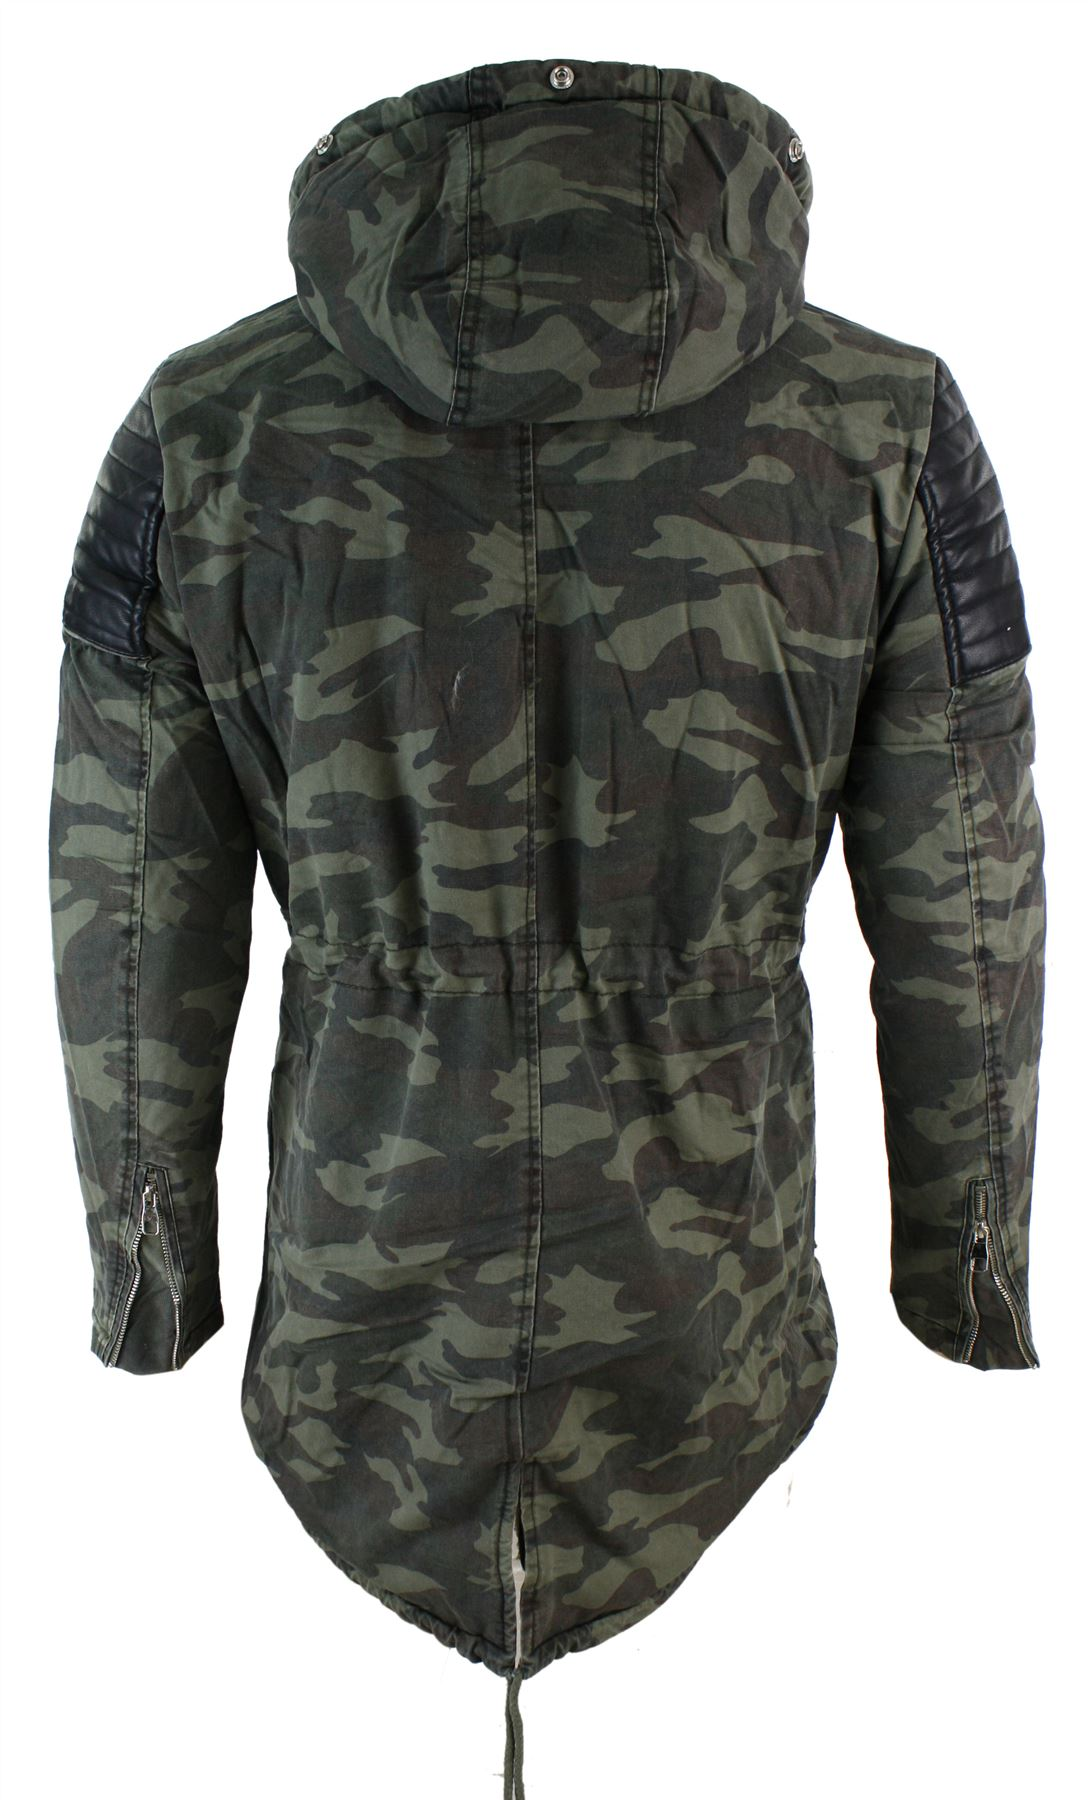 The fishtail parka was first used This military jacket has an Imperial Motion Medford Parka. by Imperial Motion. Men's Outerwear Jackets & Coats; Men's Big & Tall Outerwear Jackets & Coats; Men's Fashion Hoodies & Sweatshirts; Sports & Fitness. Men's Workout & Training Jackets.